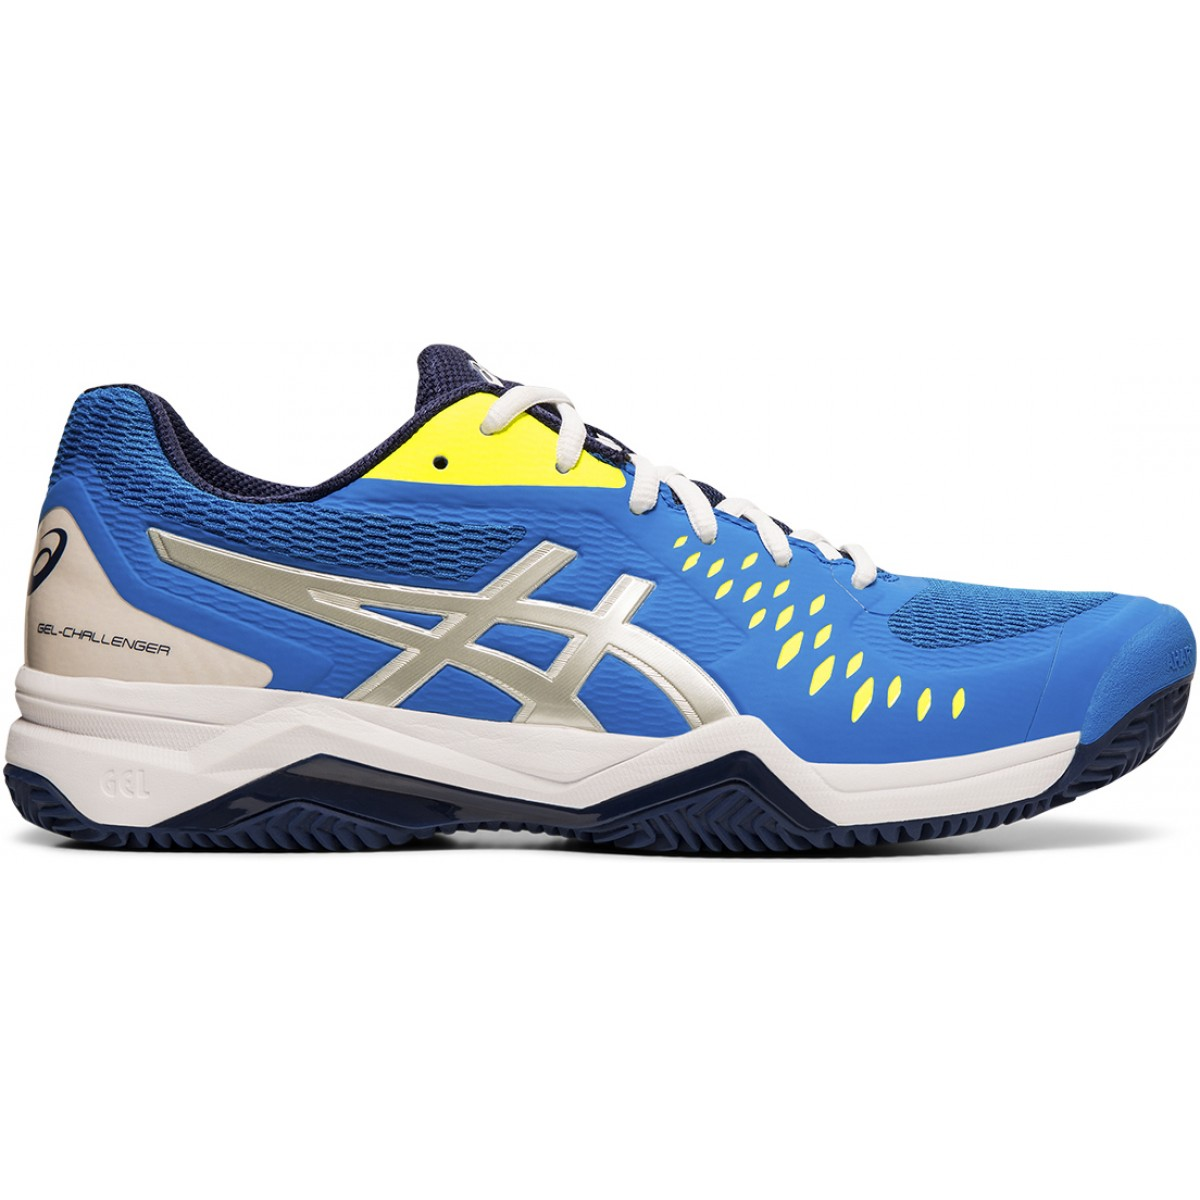 ASICS GEL CHALLENGER 12 CLAY COURT SHOES